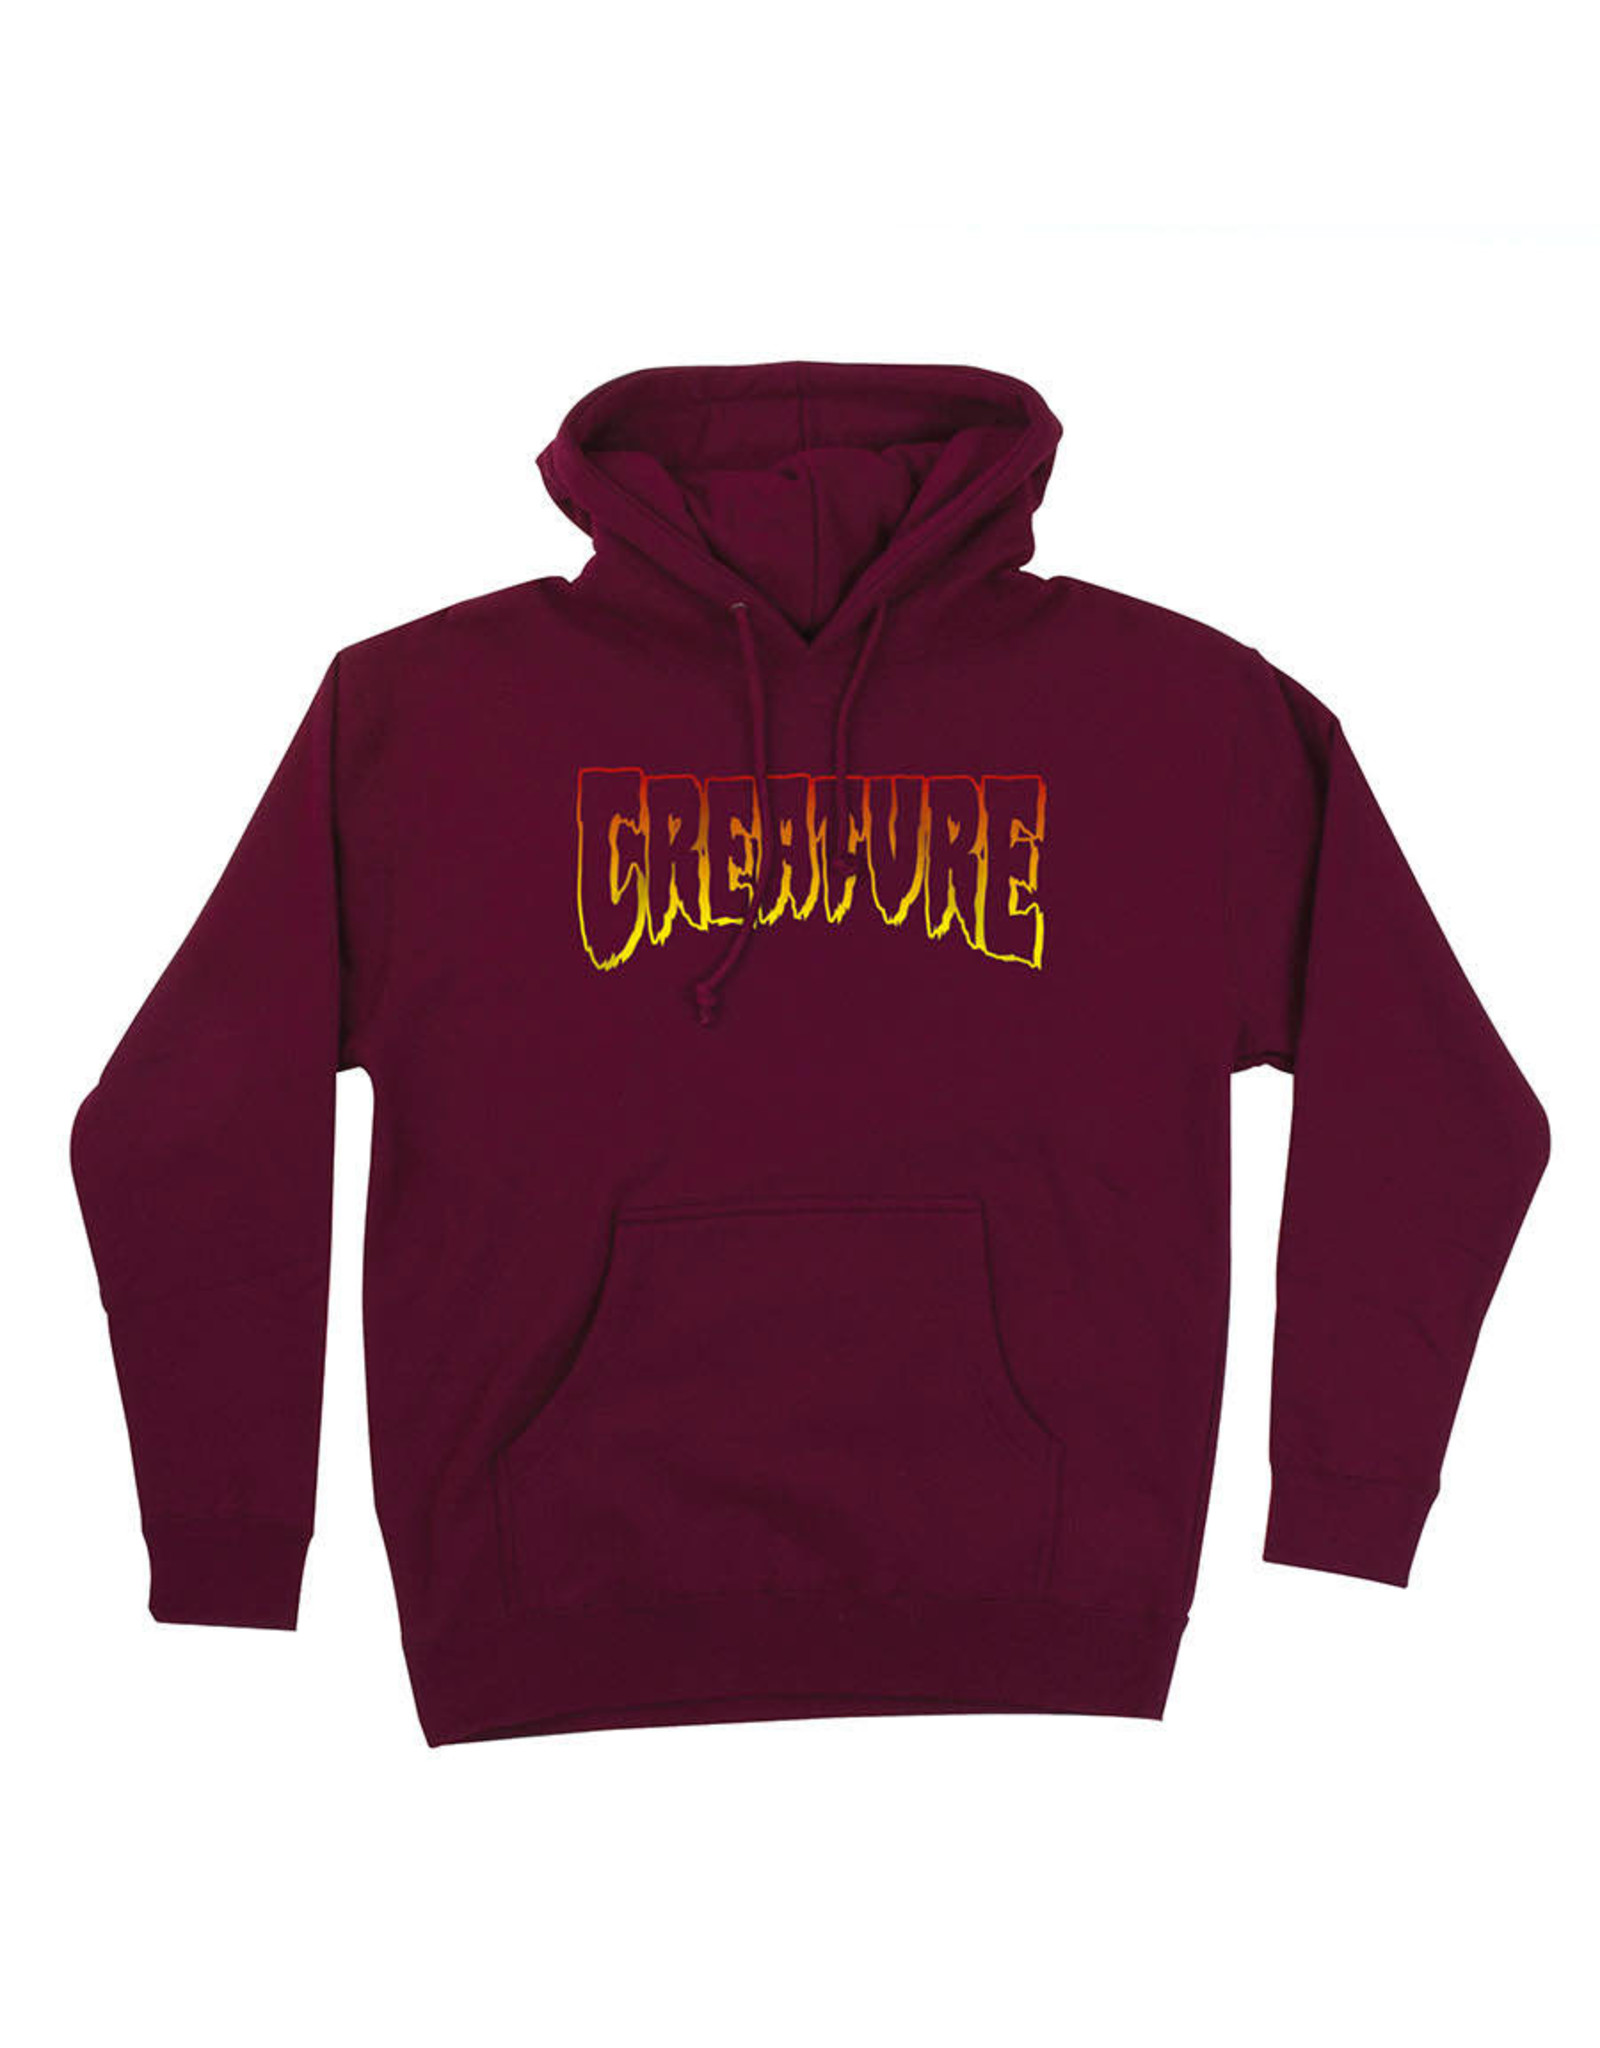 CREATURE CREATURE - CREATURE OUTLINE HOODIE - BURGUNDY -